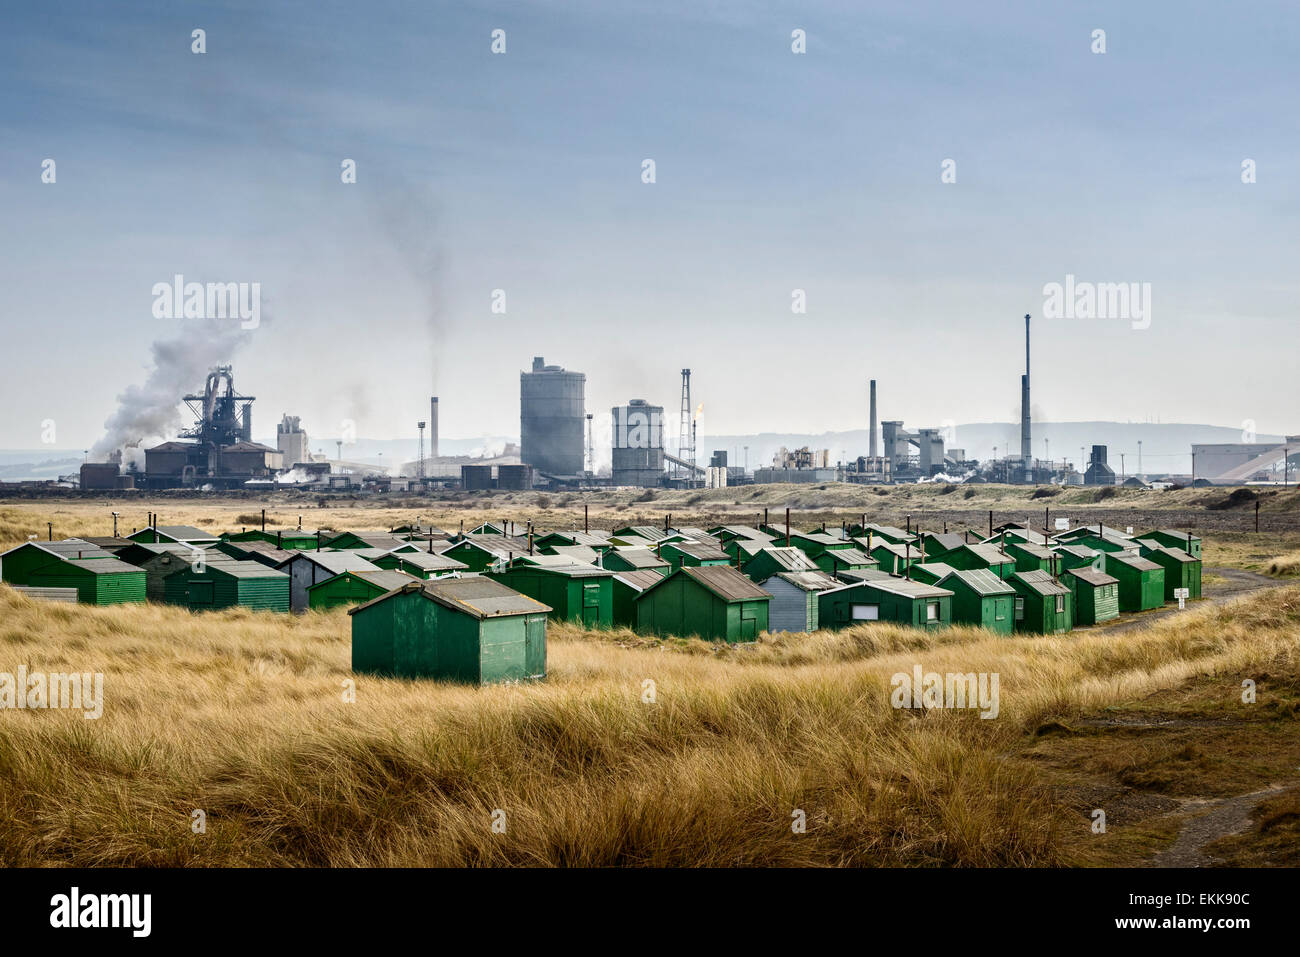 Fishermen's huts at South Gare in Redcar with the Sahaviriya Steel Industries UK (SSI) Steel Plant in the background. - Stock Image